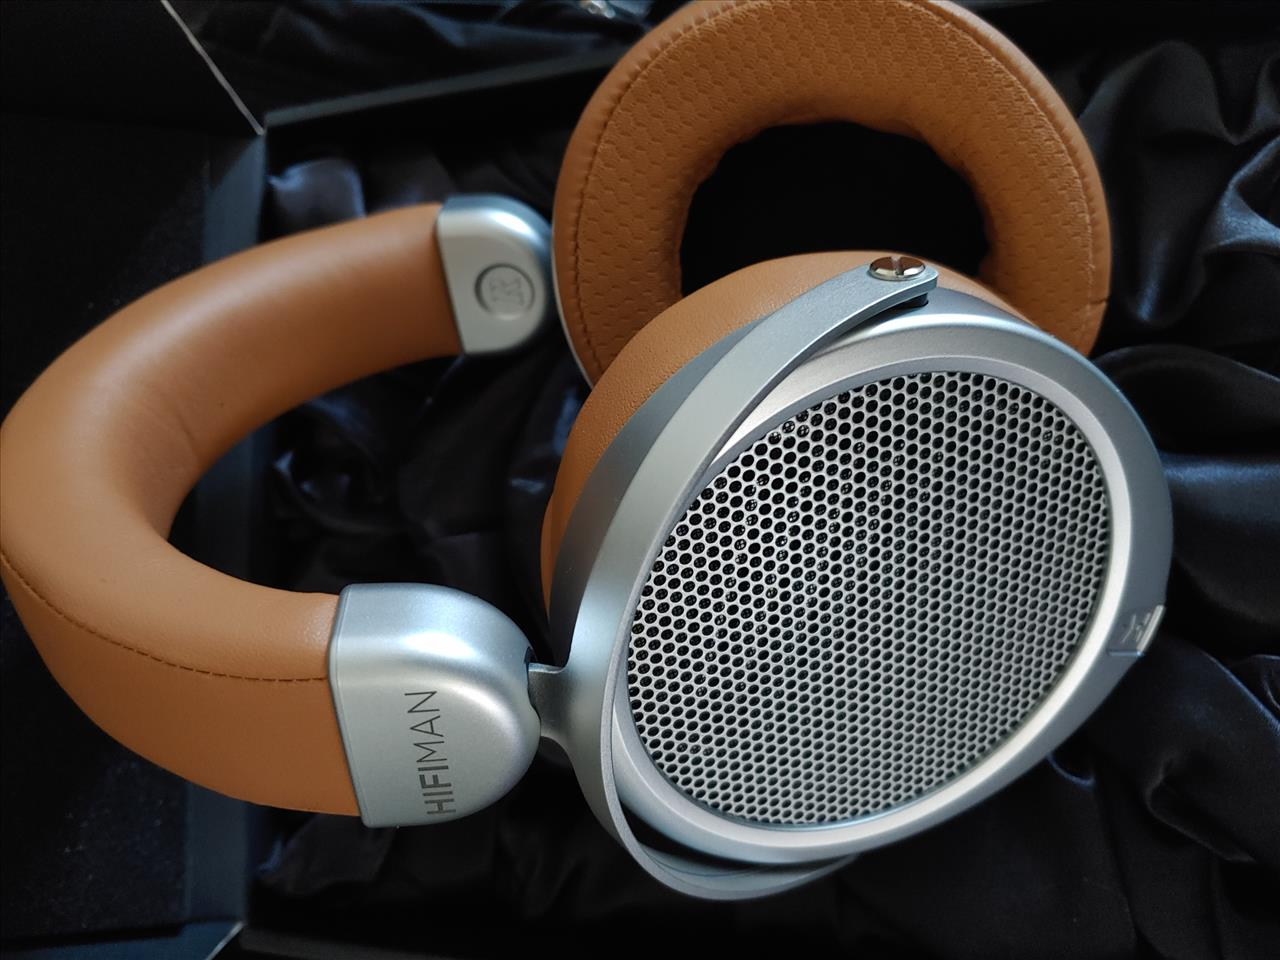 HIFIMAN DEVA Headphones Review – It Ain't Over Til the DEVA Sings